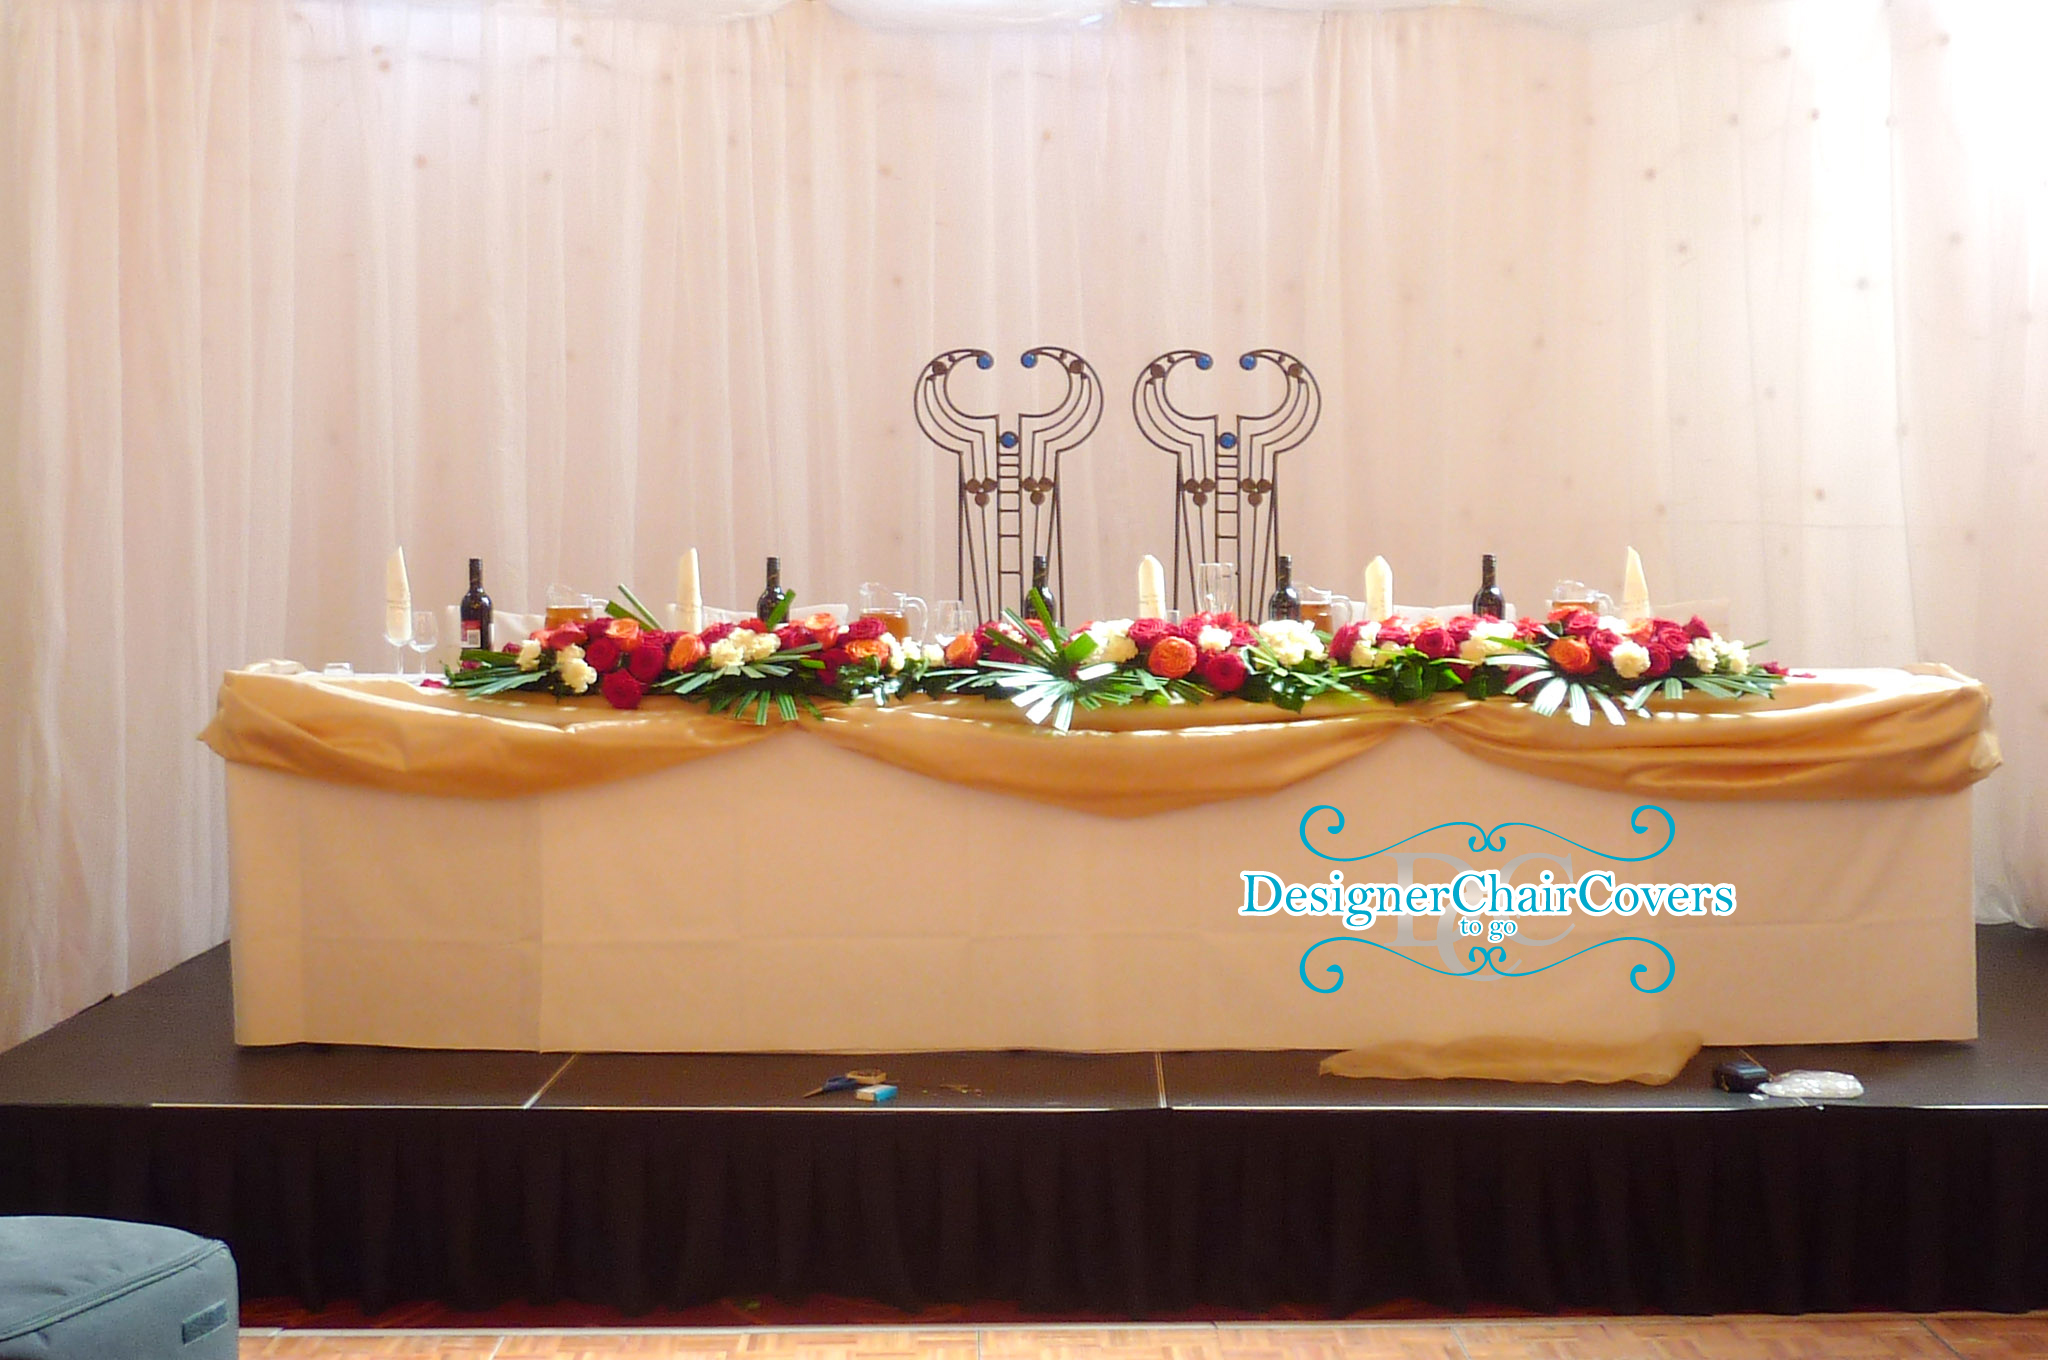 chair cover hire croydon small chairs for living room wedding backdrops our range designer covers to go